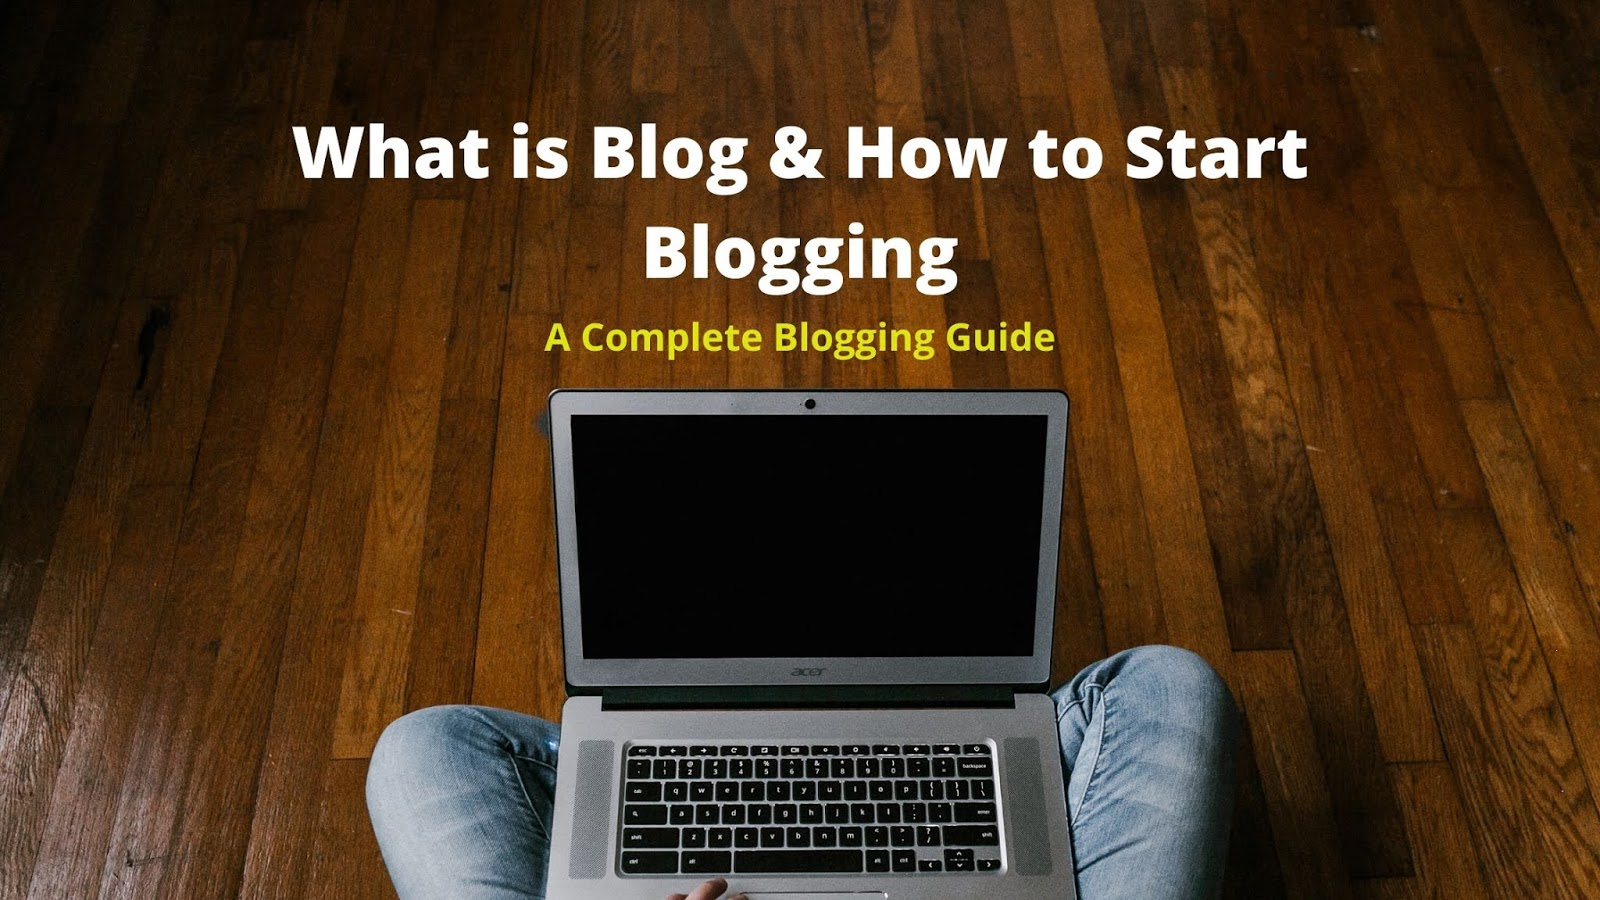 What is Blog & How to Start Blogging- A Complete Blogging Guide